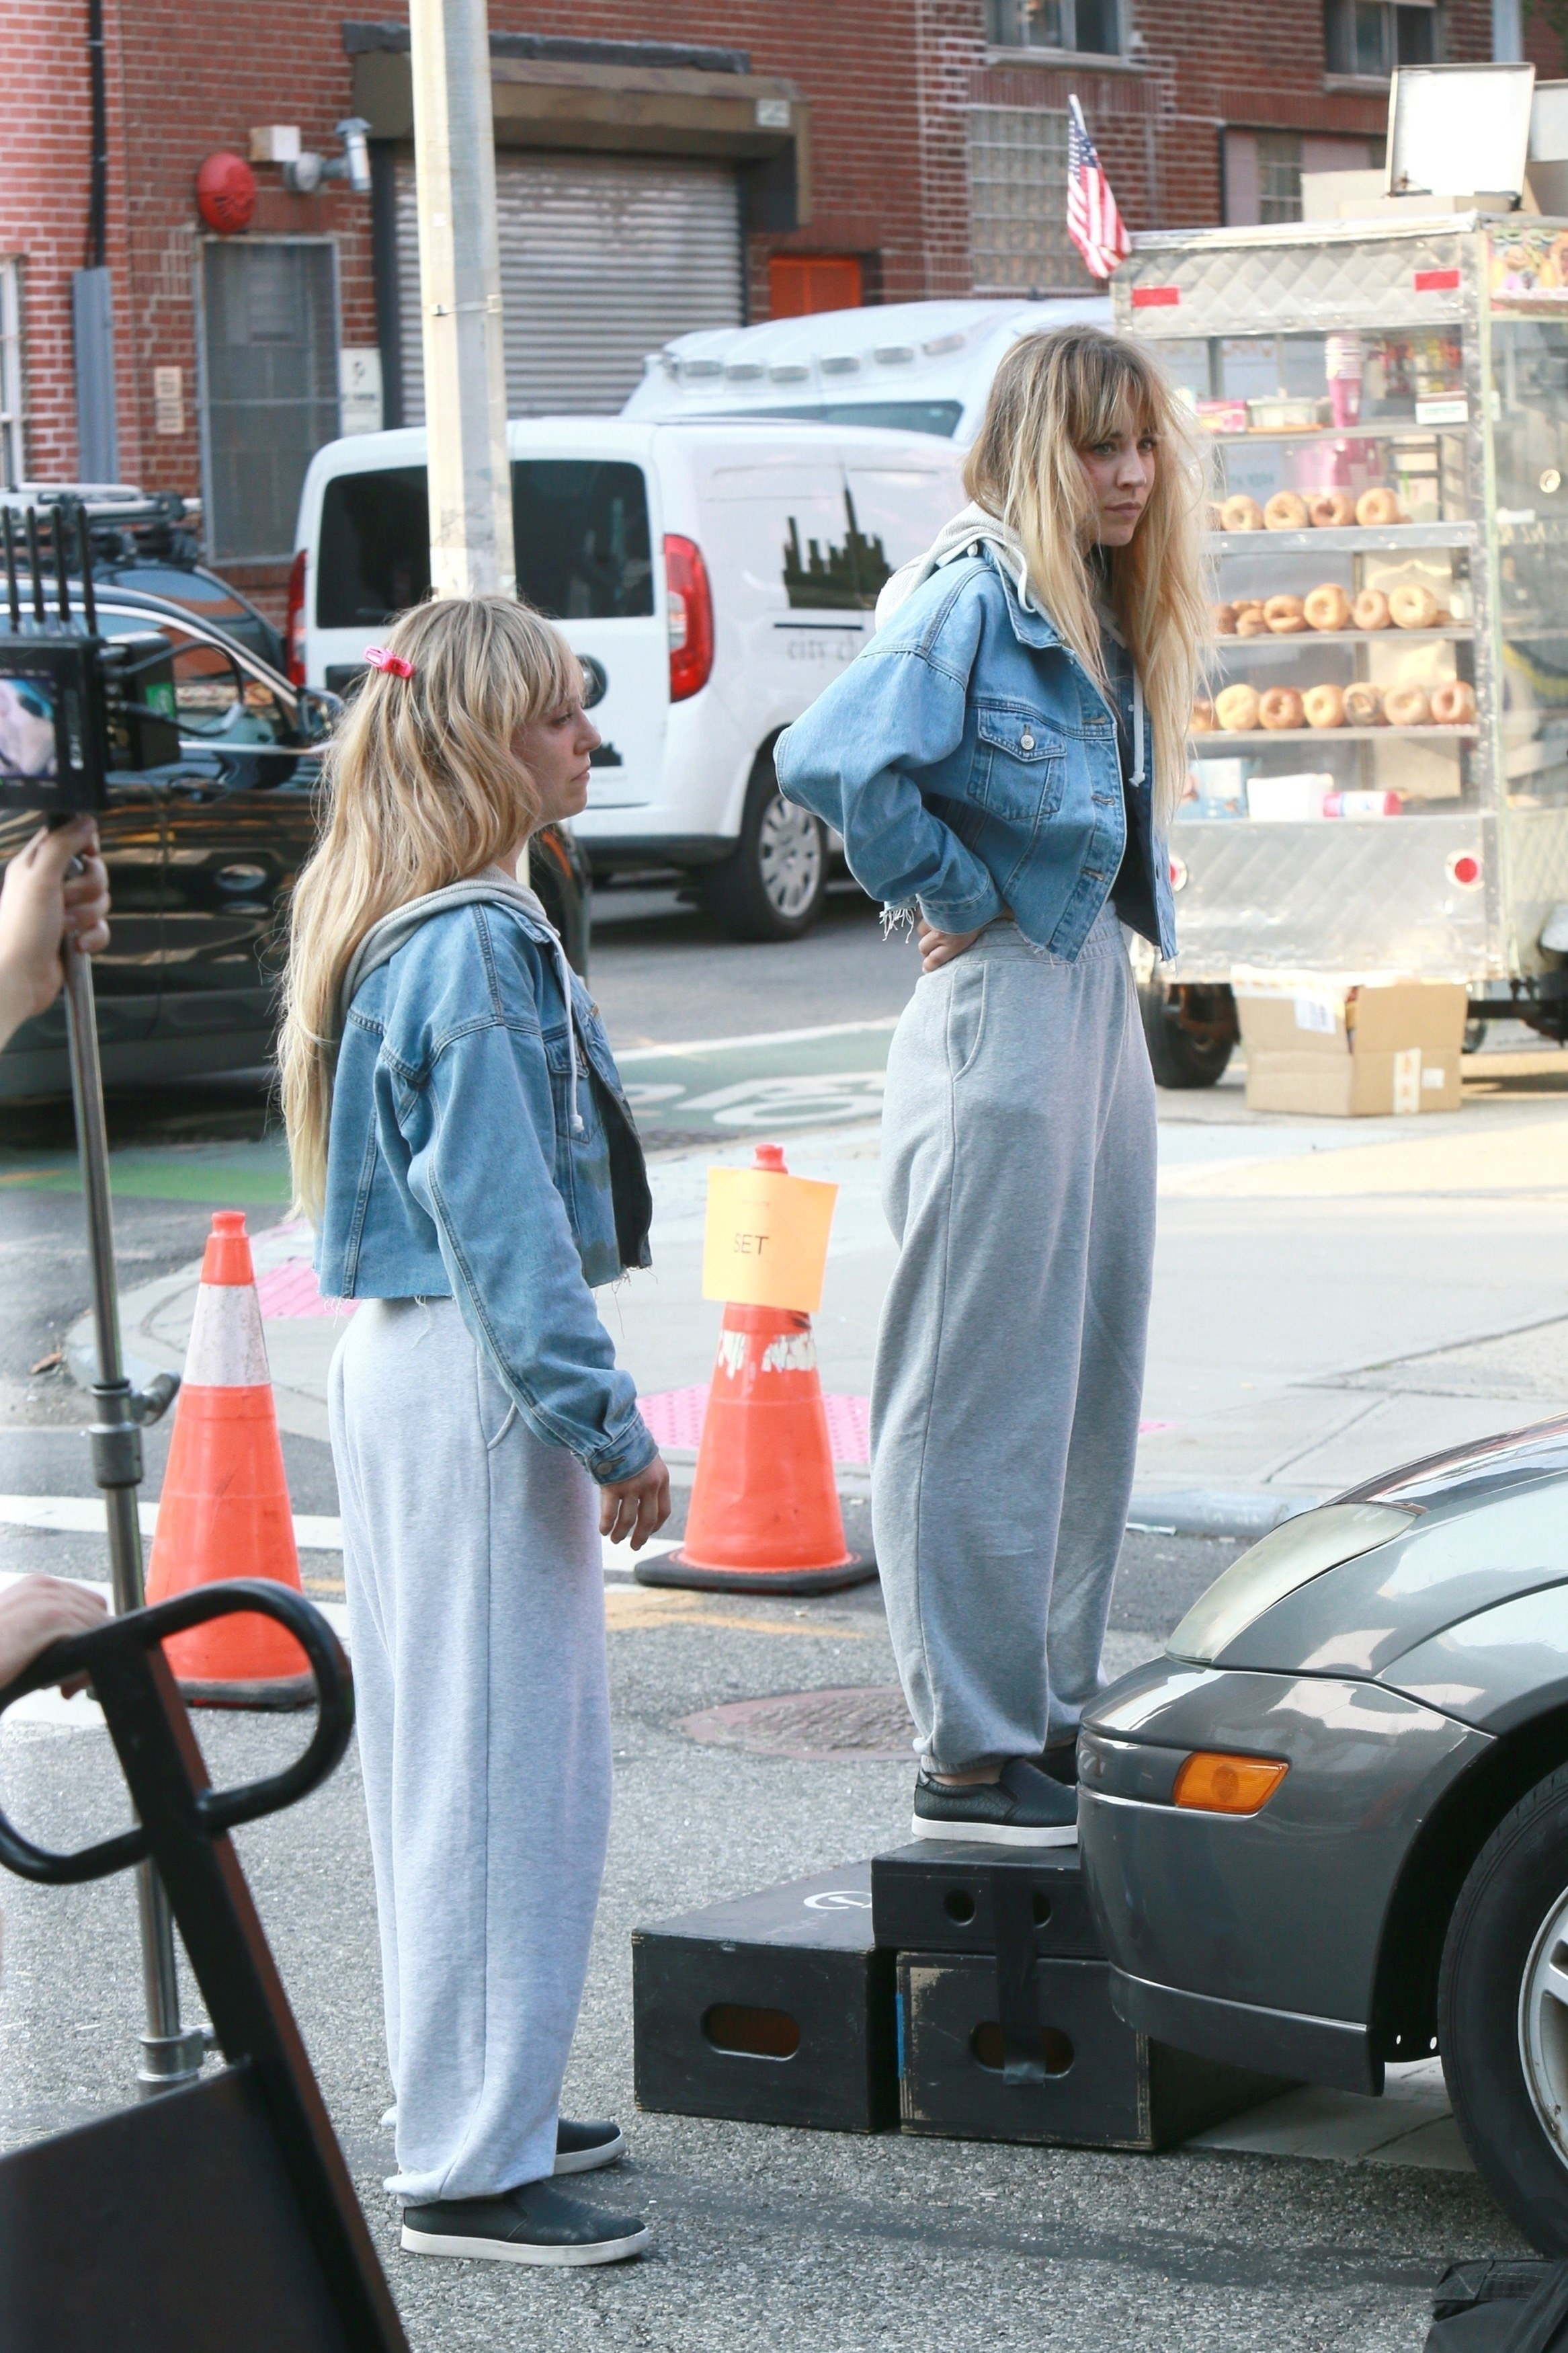 Kaley Cuoco and her stunt double filming outdoors